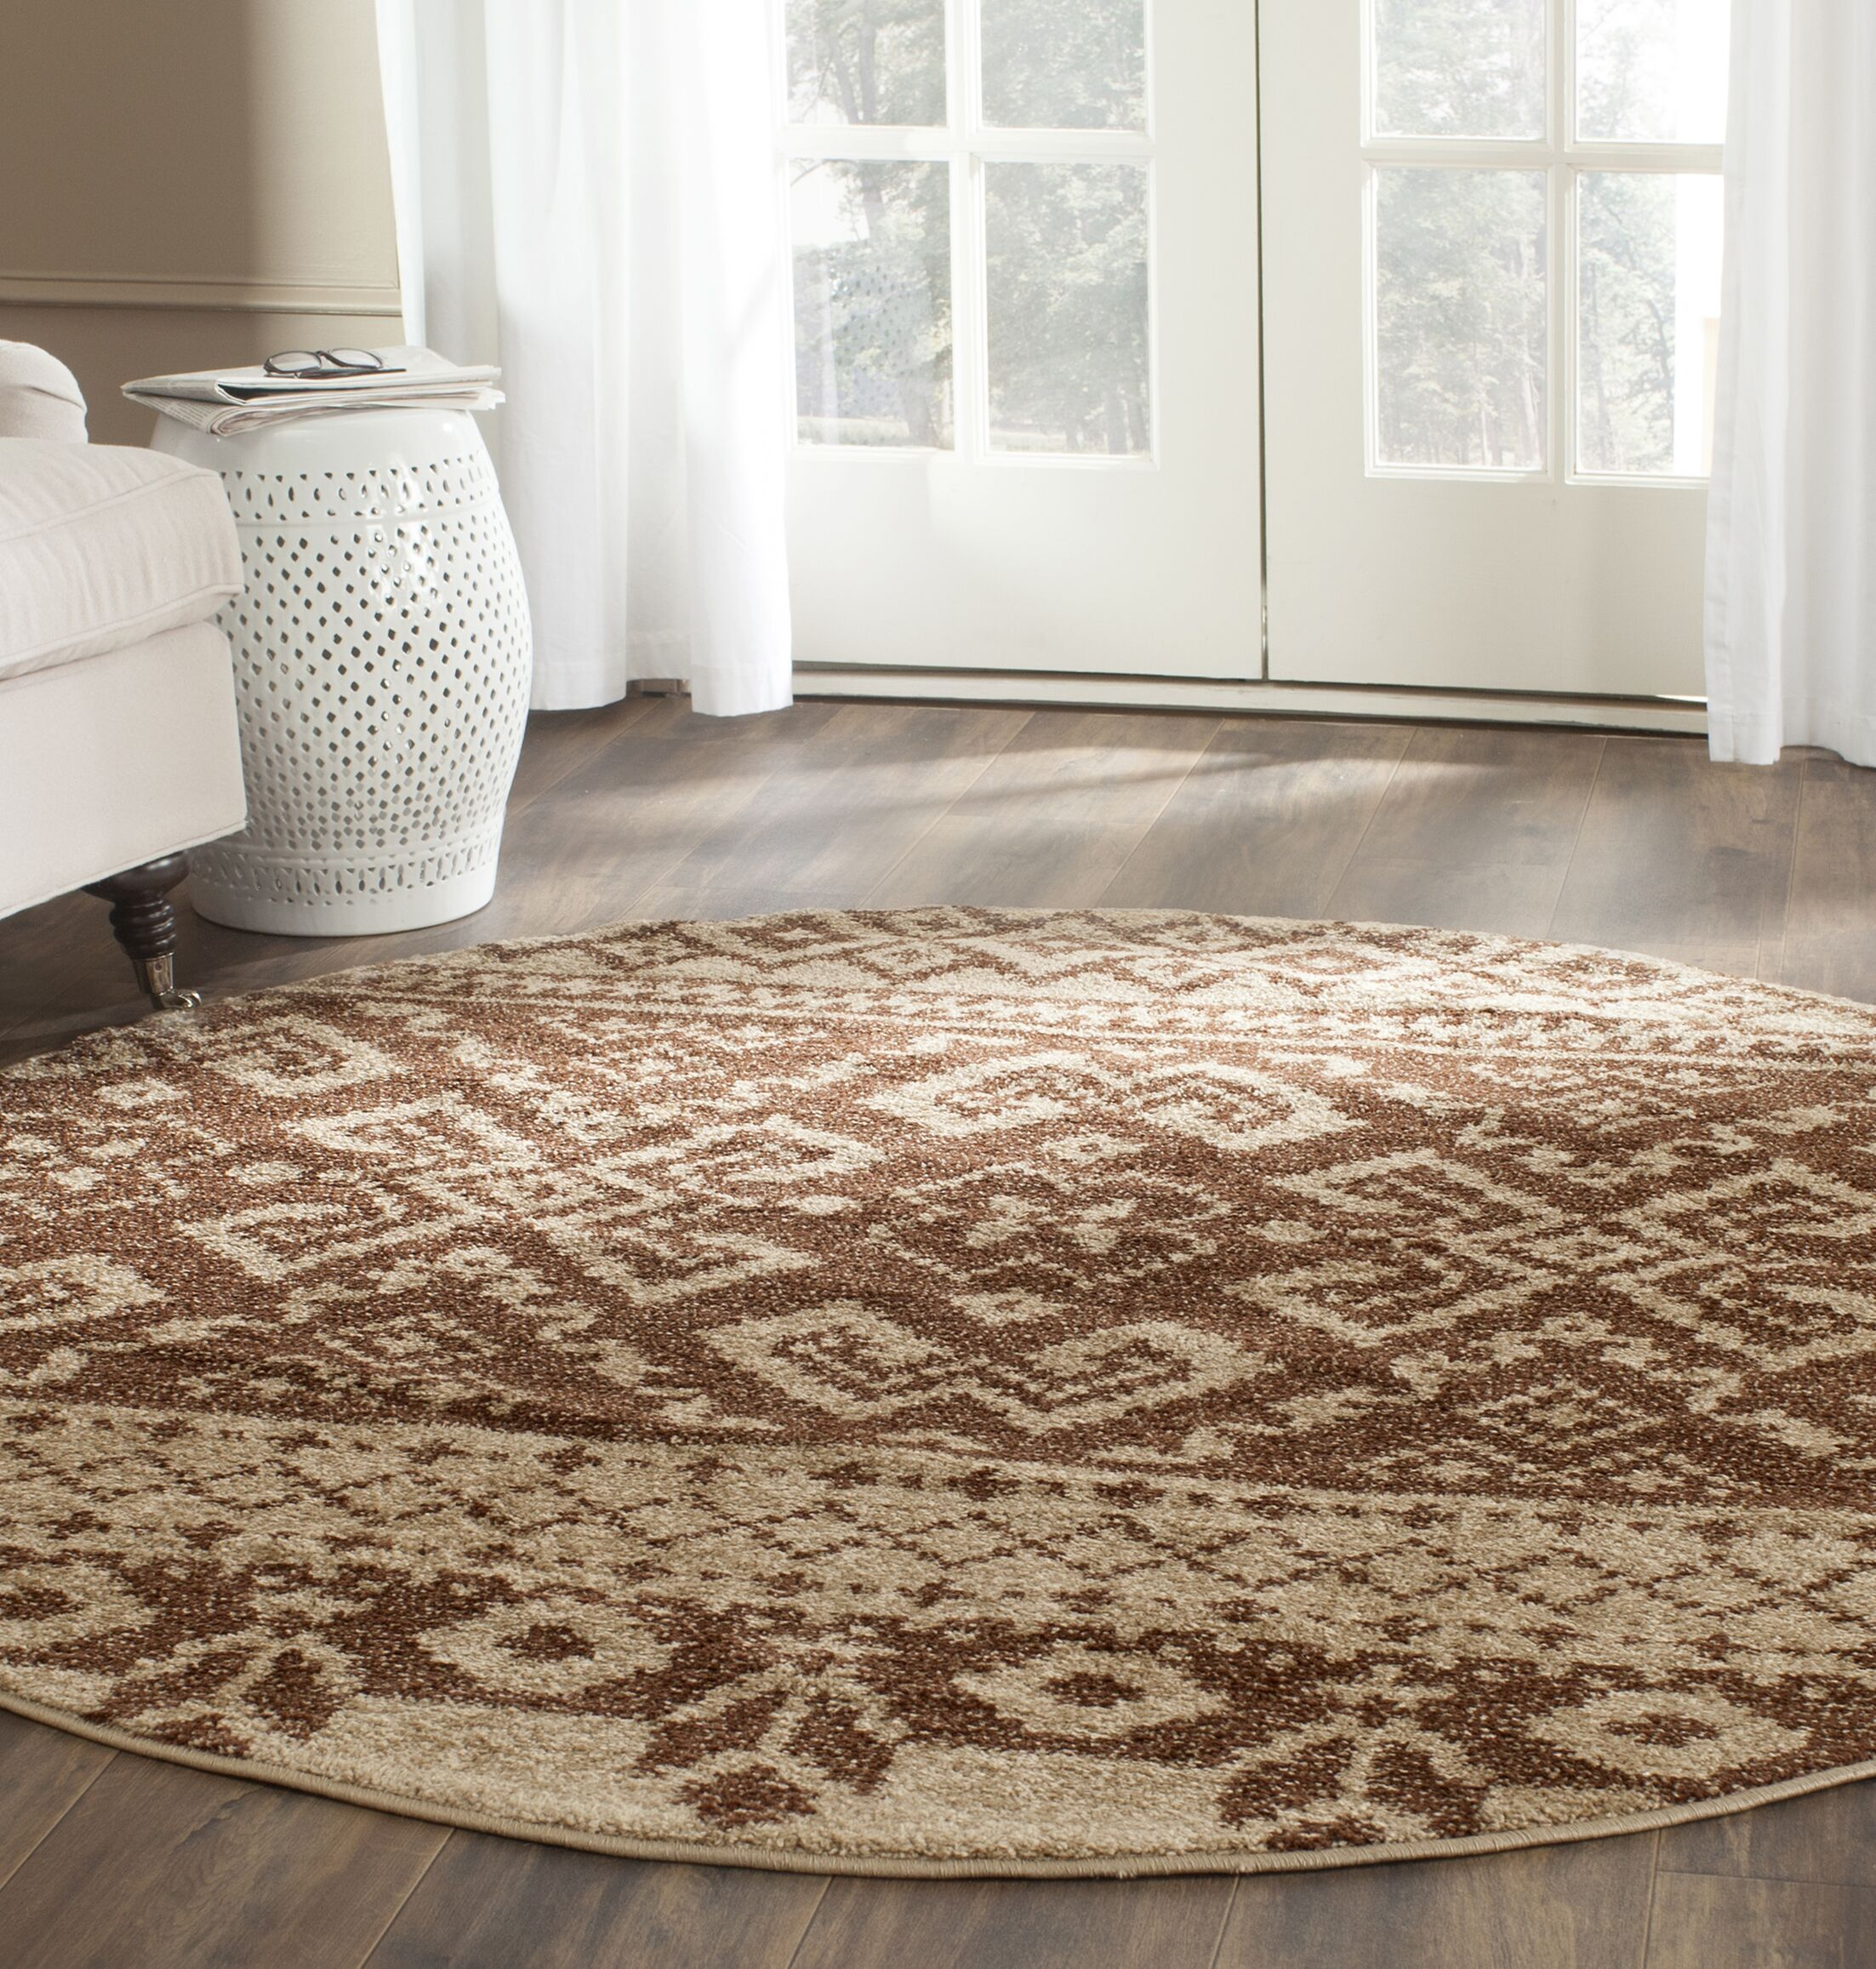 St. Ann Highlands Camel/Chocolate Area Rug Rug Size: Rectangle 10' x 14'